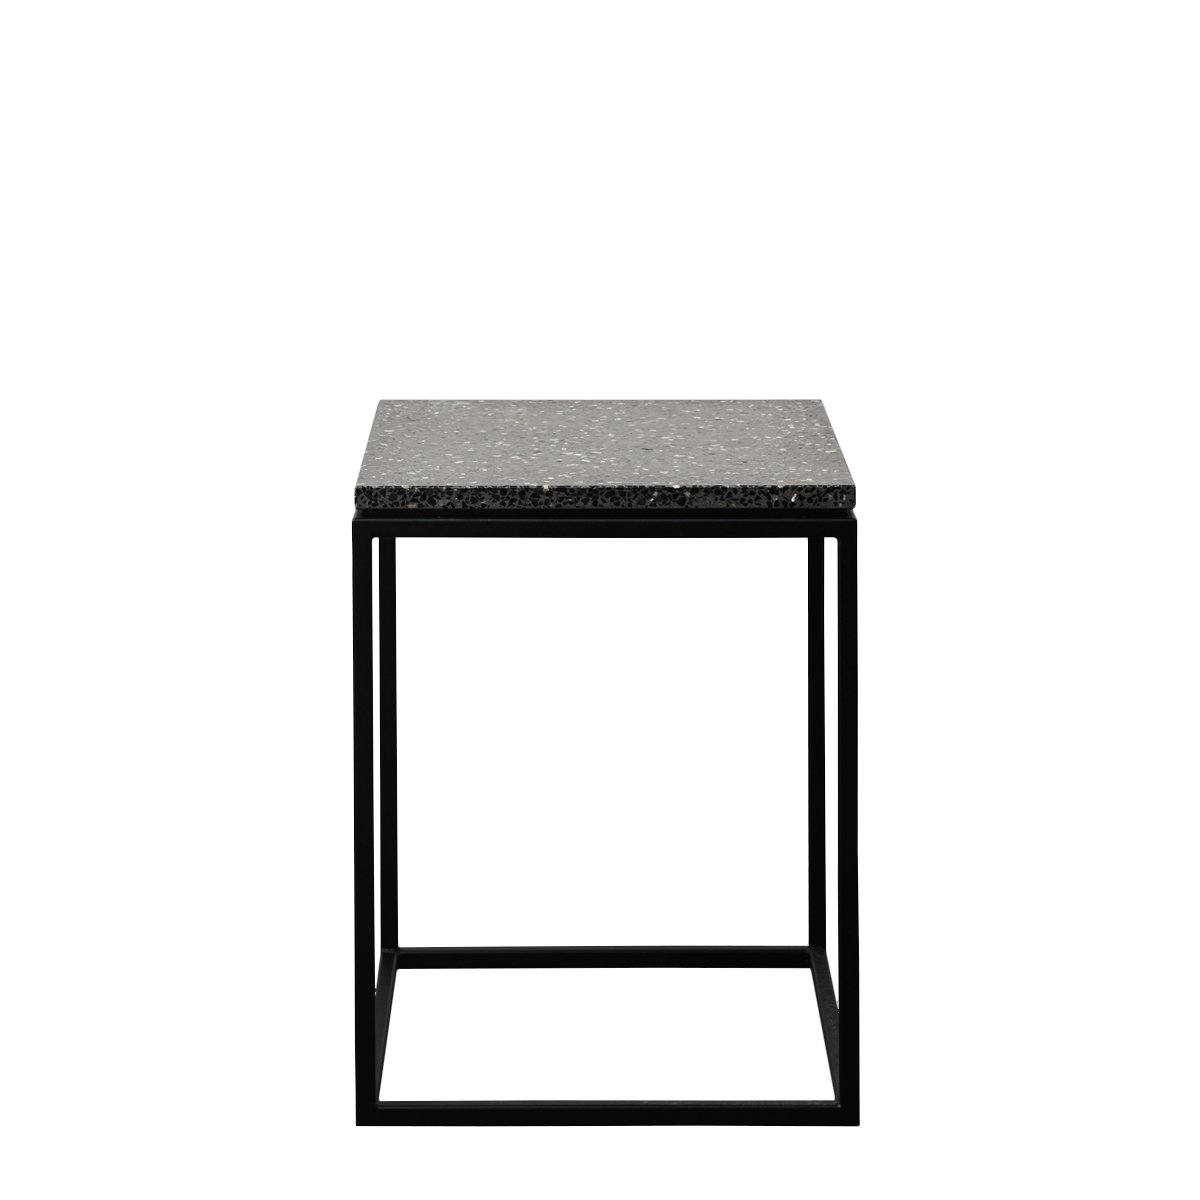 Siena Terrazzo Side Table by Slabs by Design, a Side Table for sale on Style Sourcebook